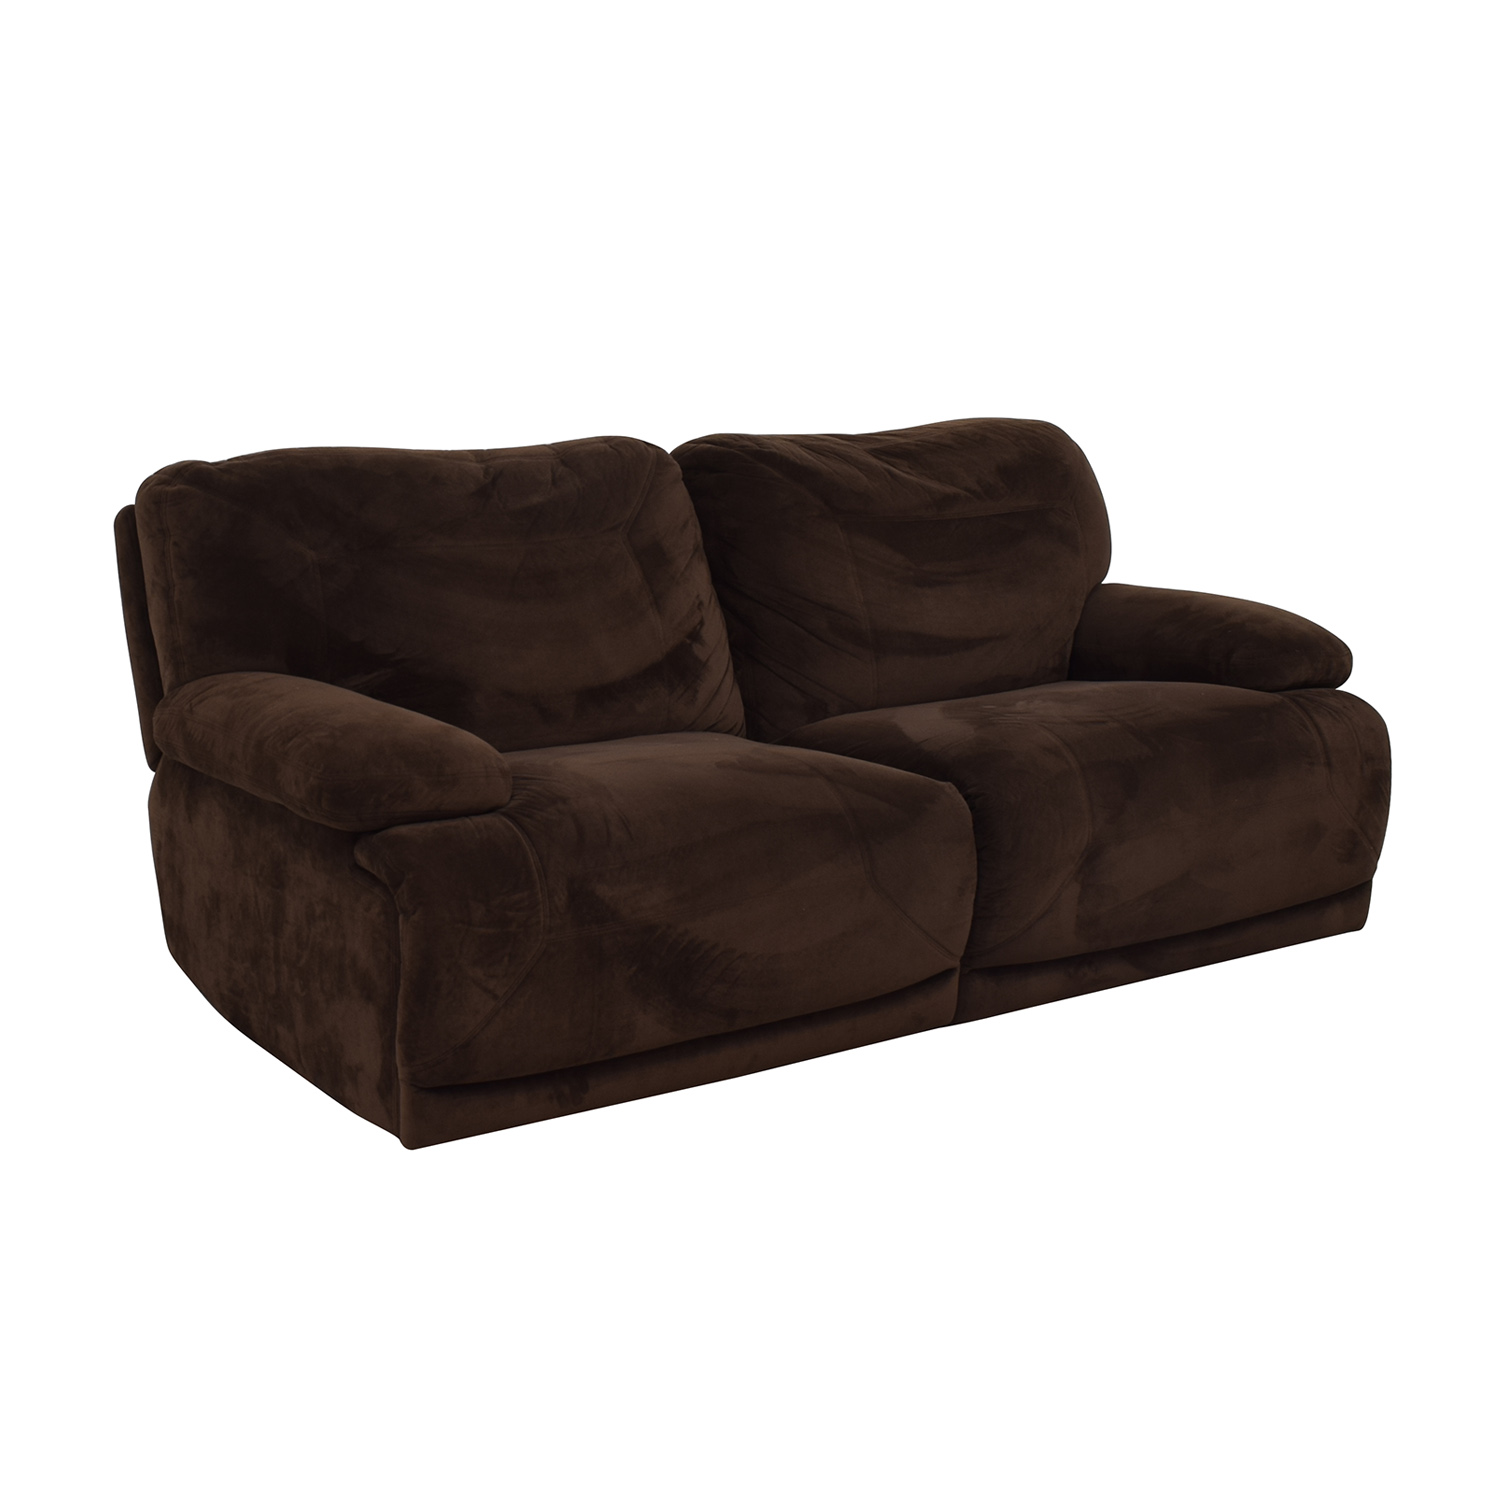 Macy's Macy's Brown Recliner Couch coupon